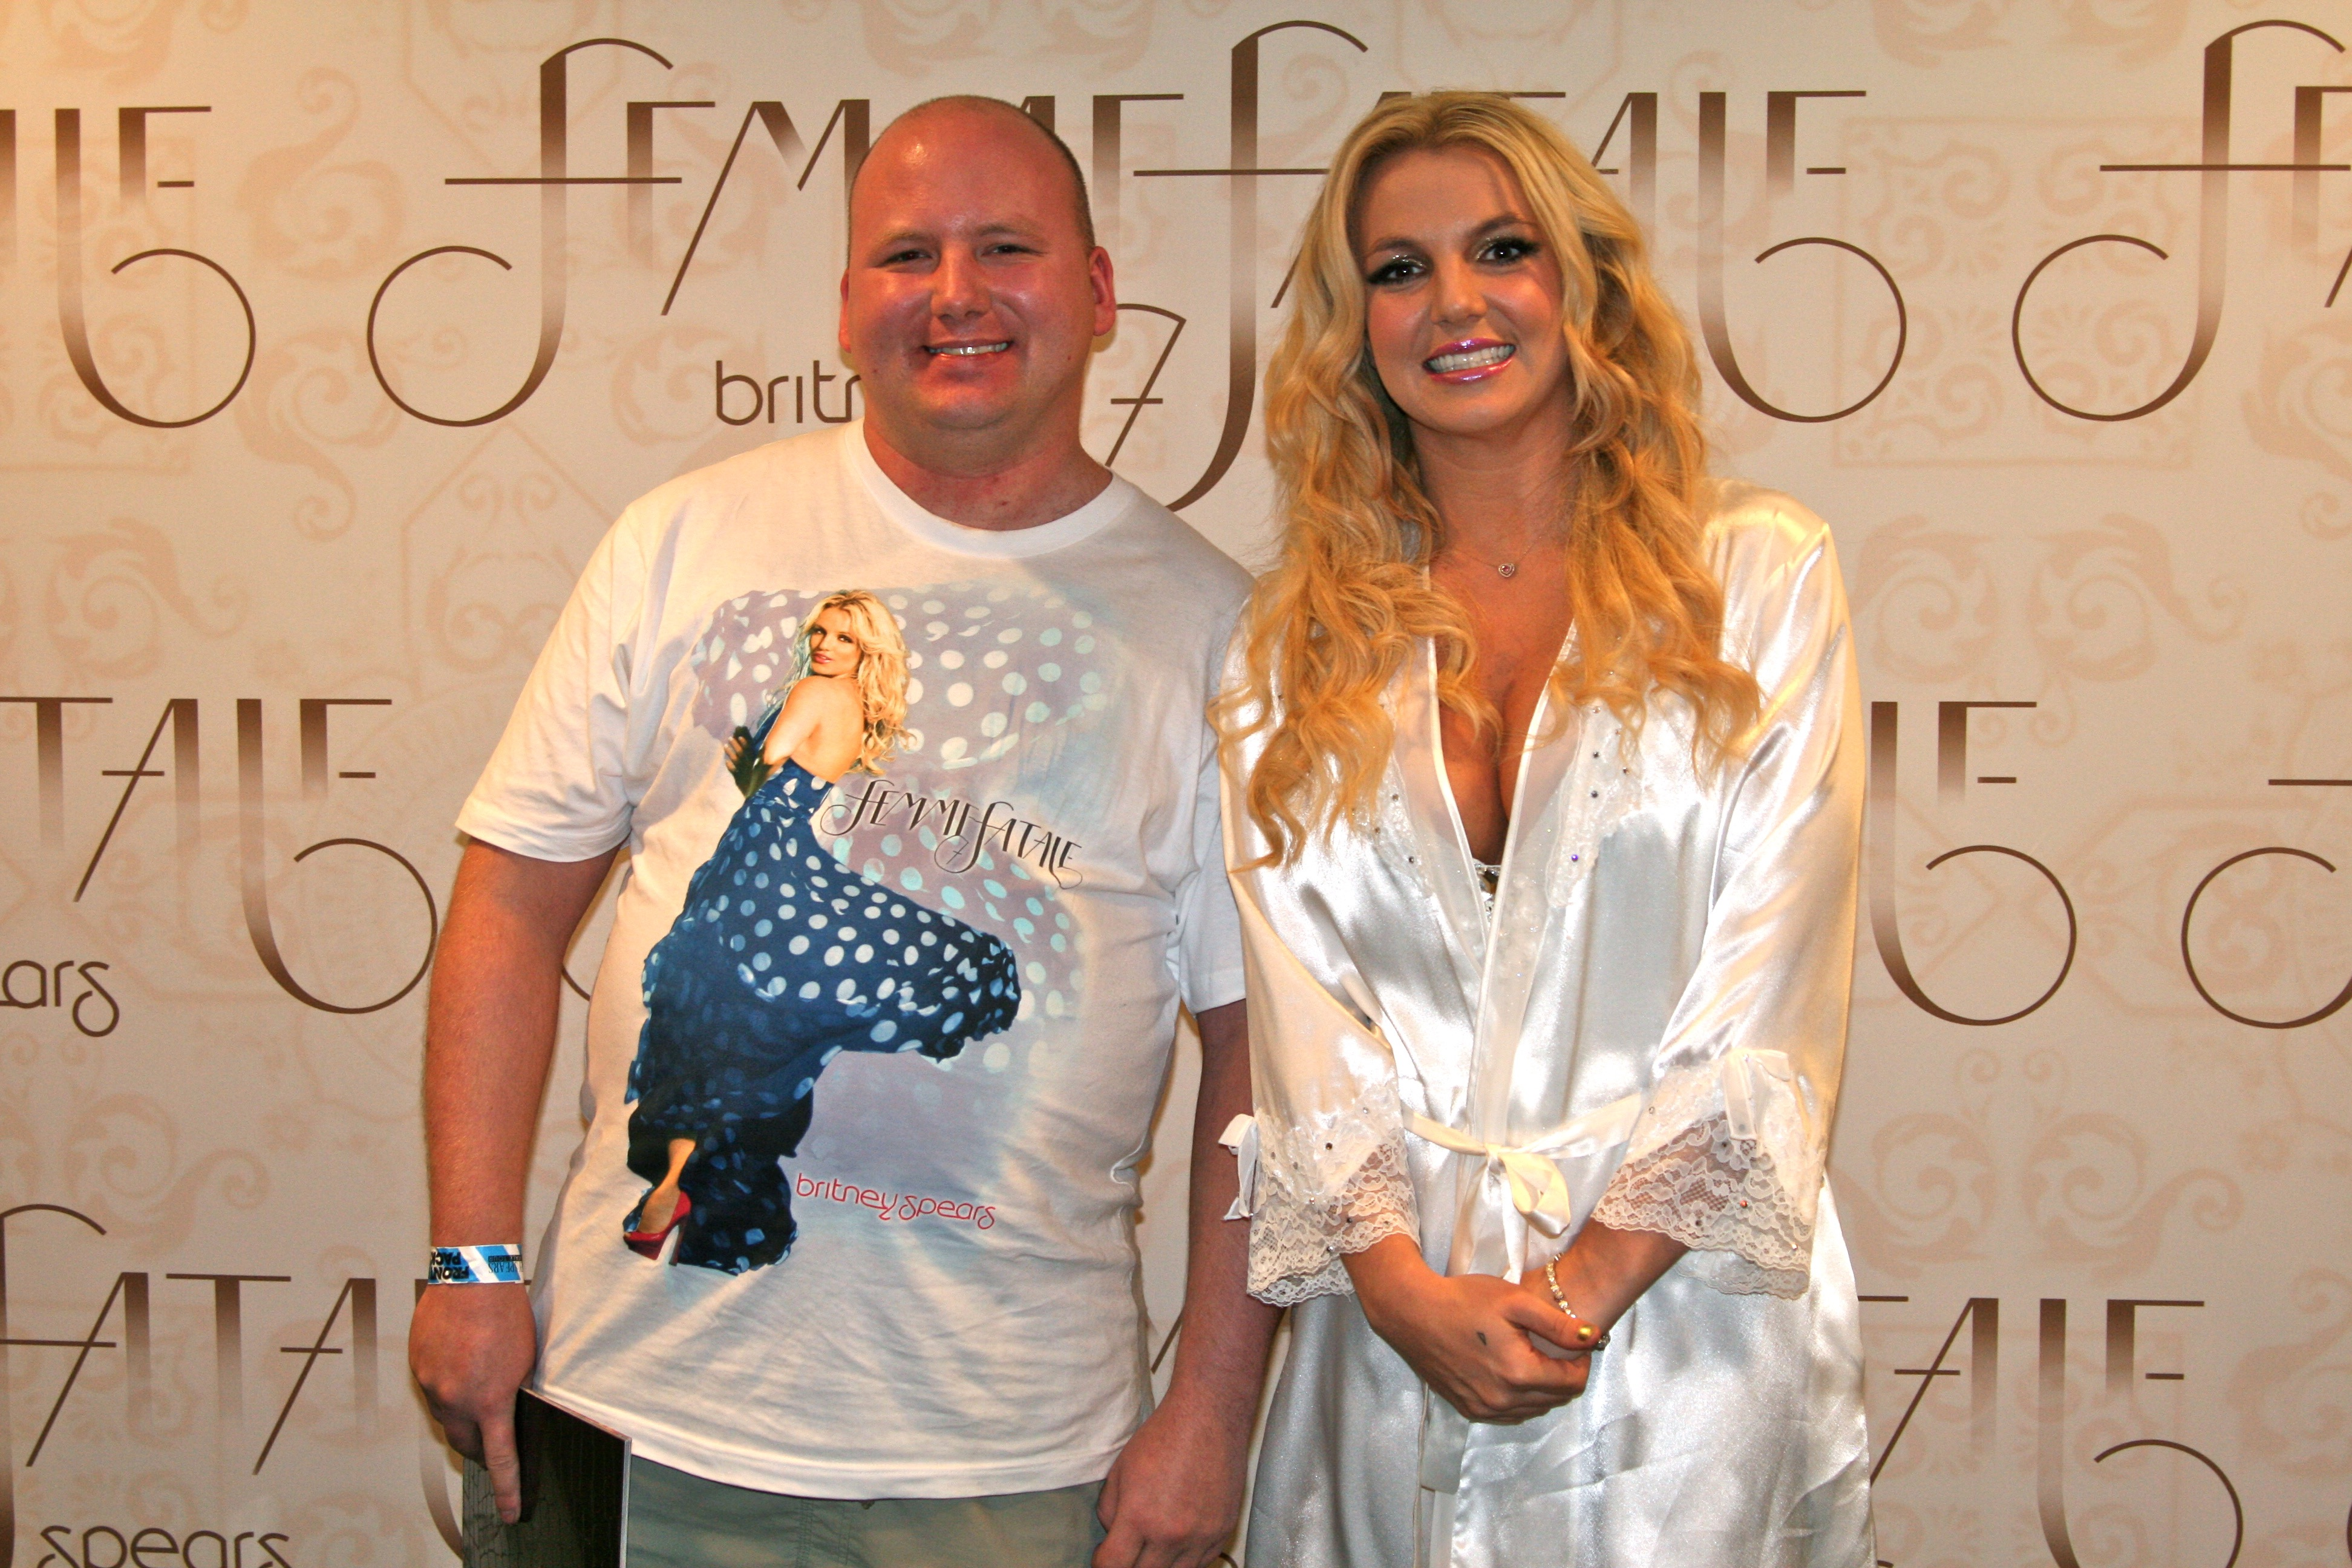 Meet greets interactive michaelxperience 20 britney spears m4hsunfo